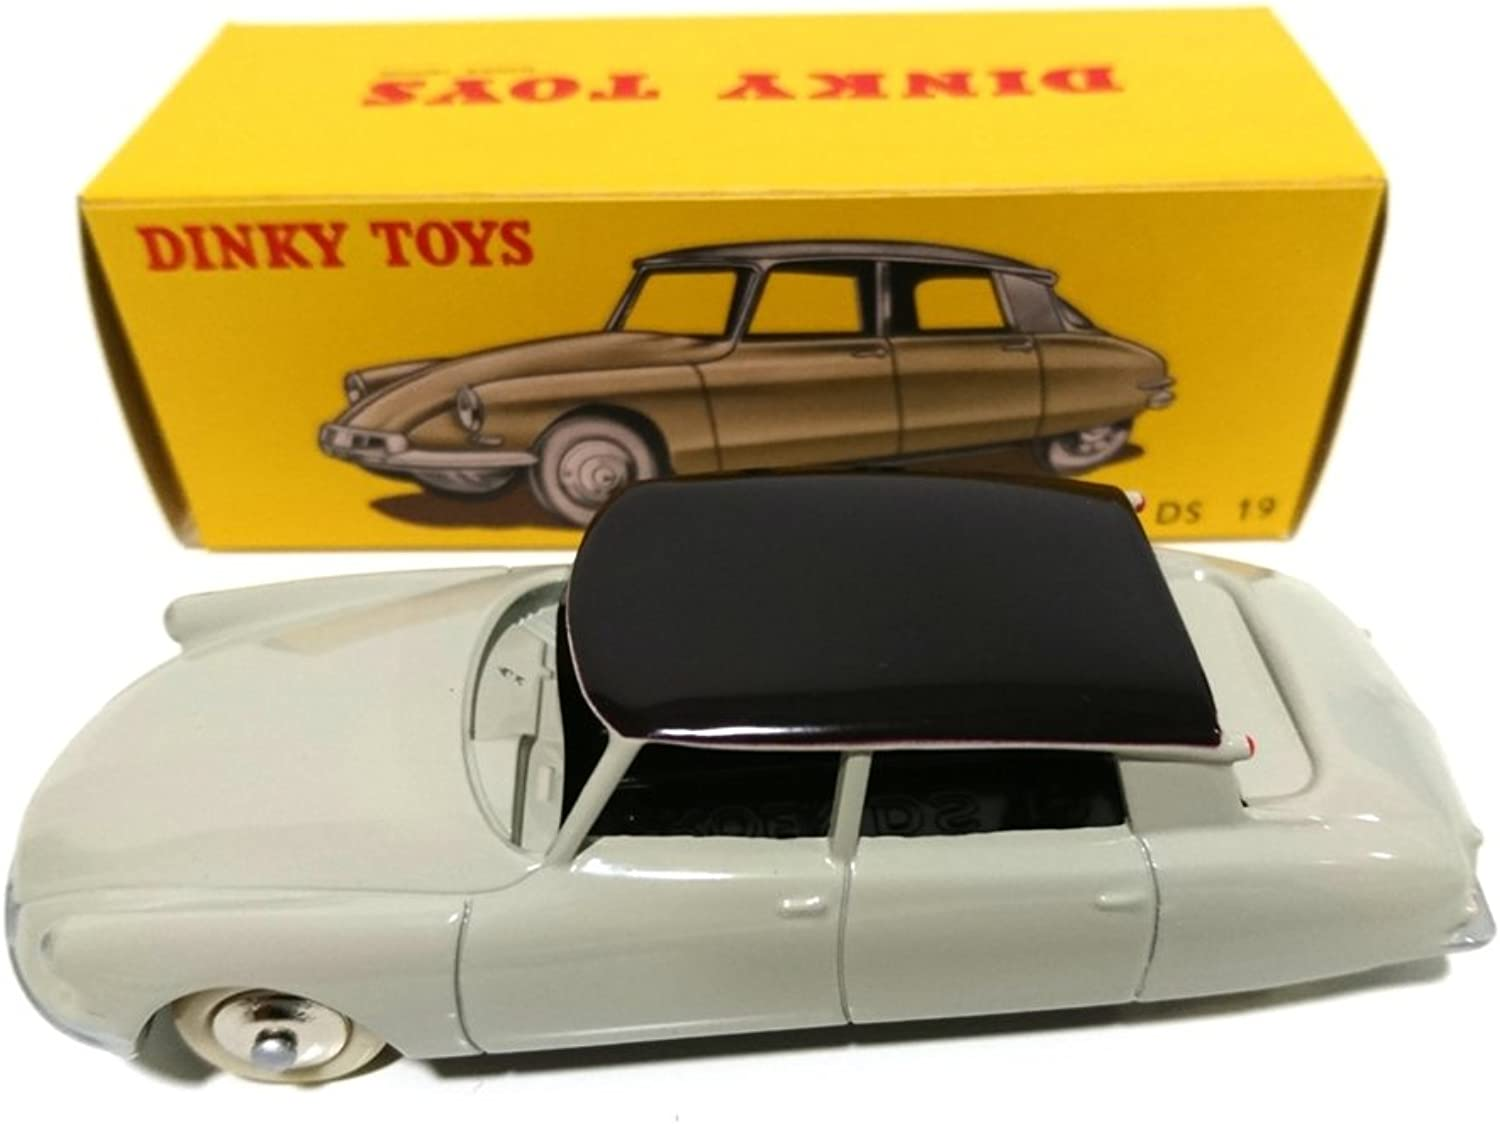 ATLAS DINKY TOYS CITROEN DS 19 (ref 24 C) grey color   Gift end of collection for subscribers  rare limited edition